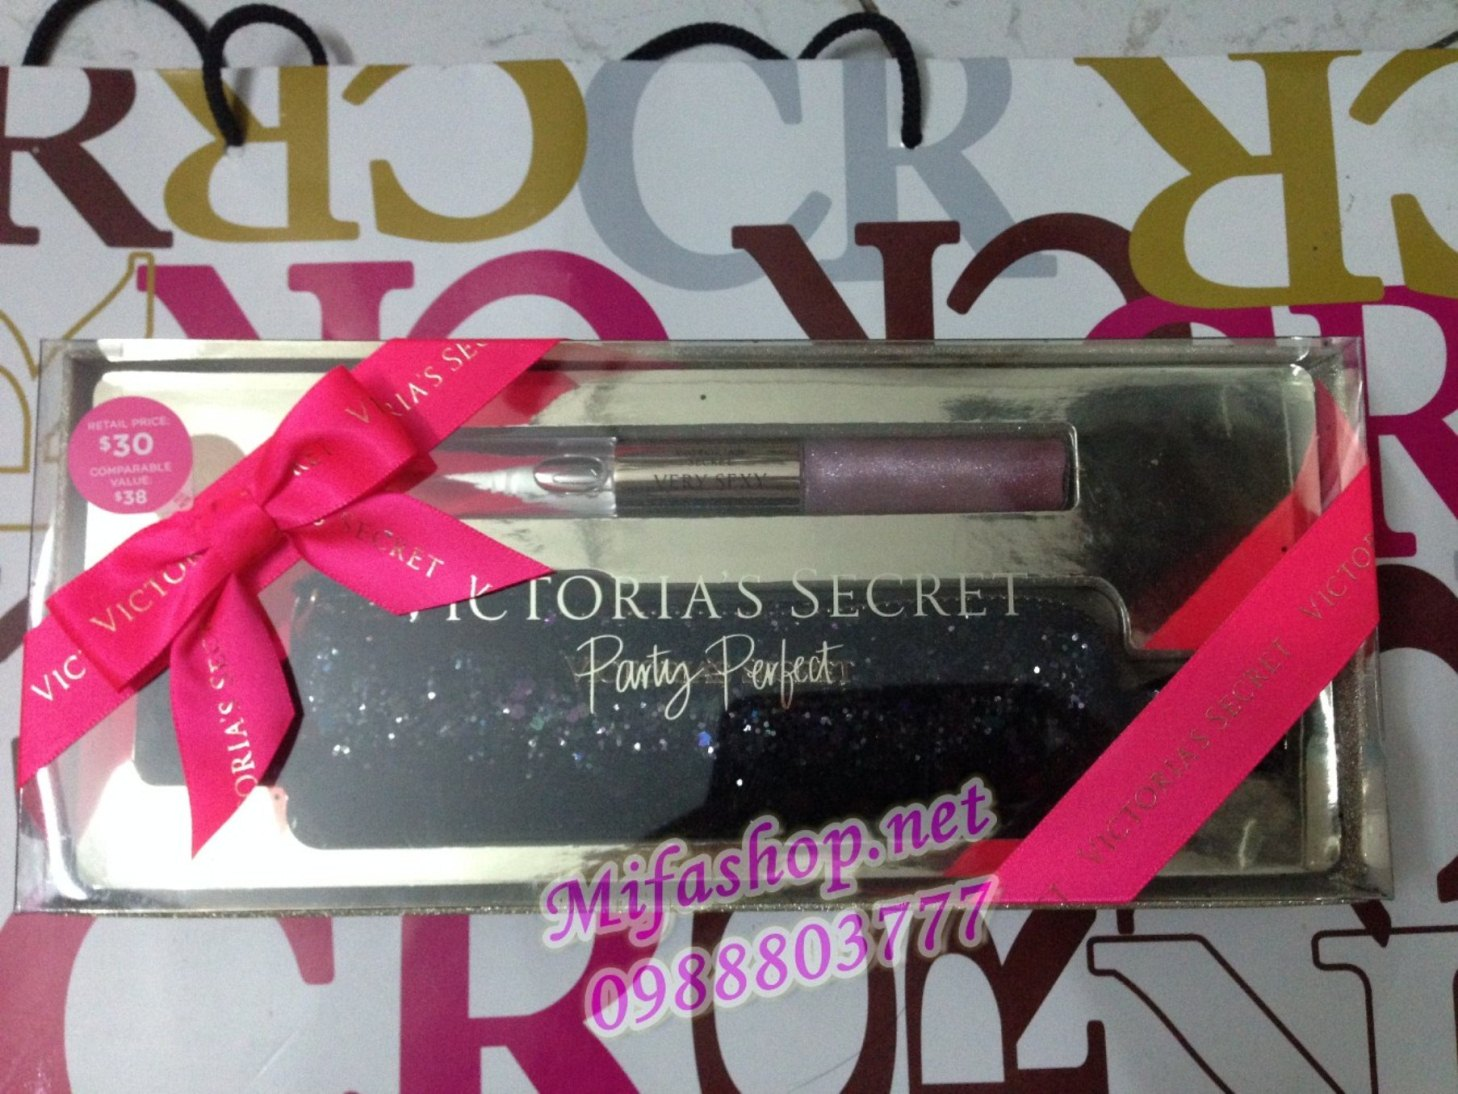 Set quà tặng Victoria's Secret Party Perfect